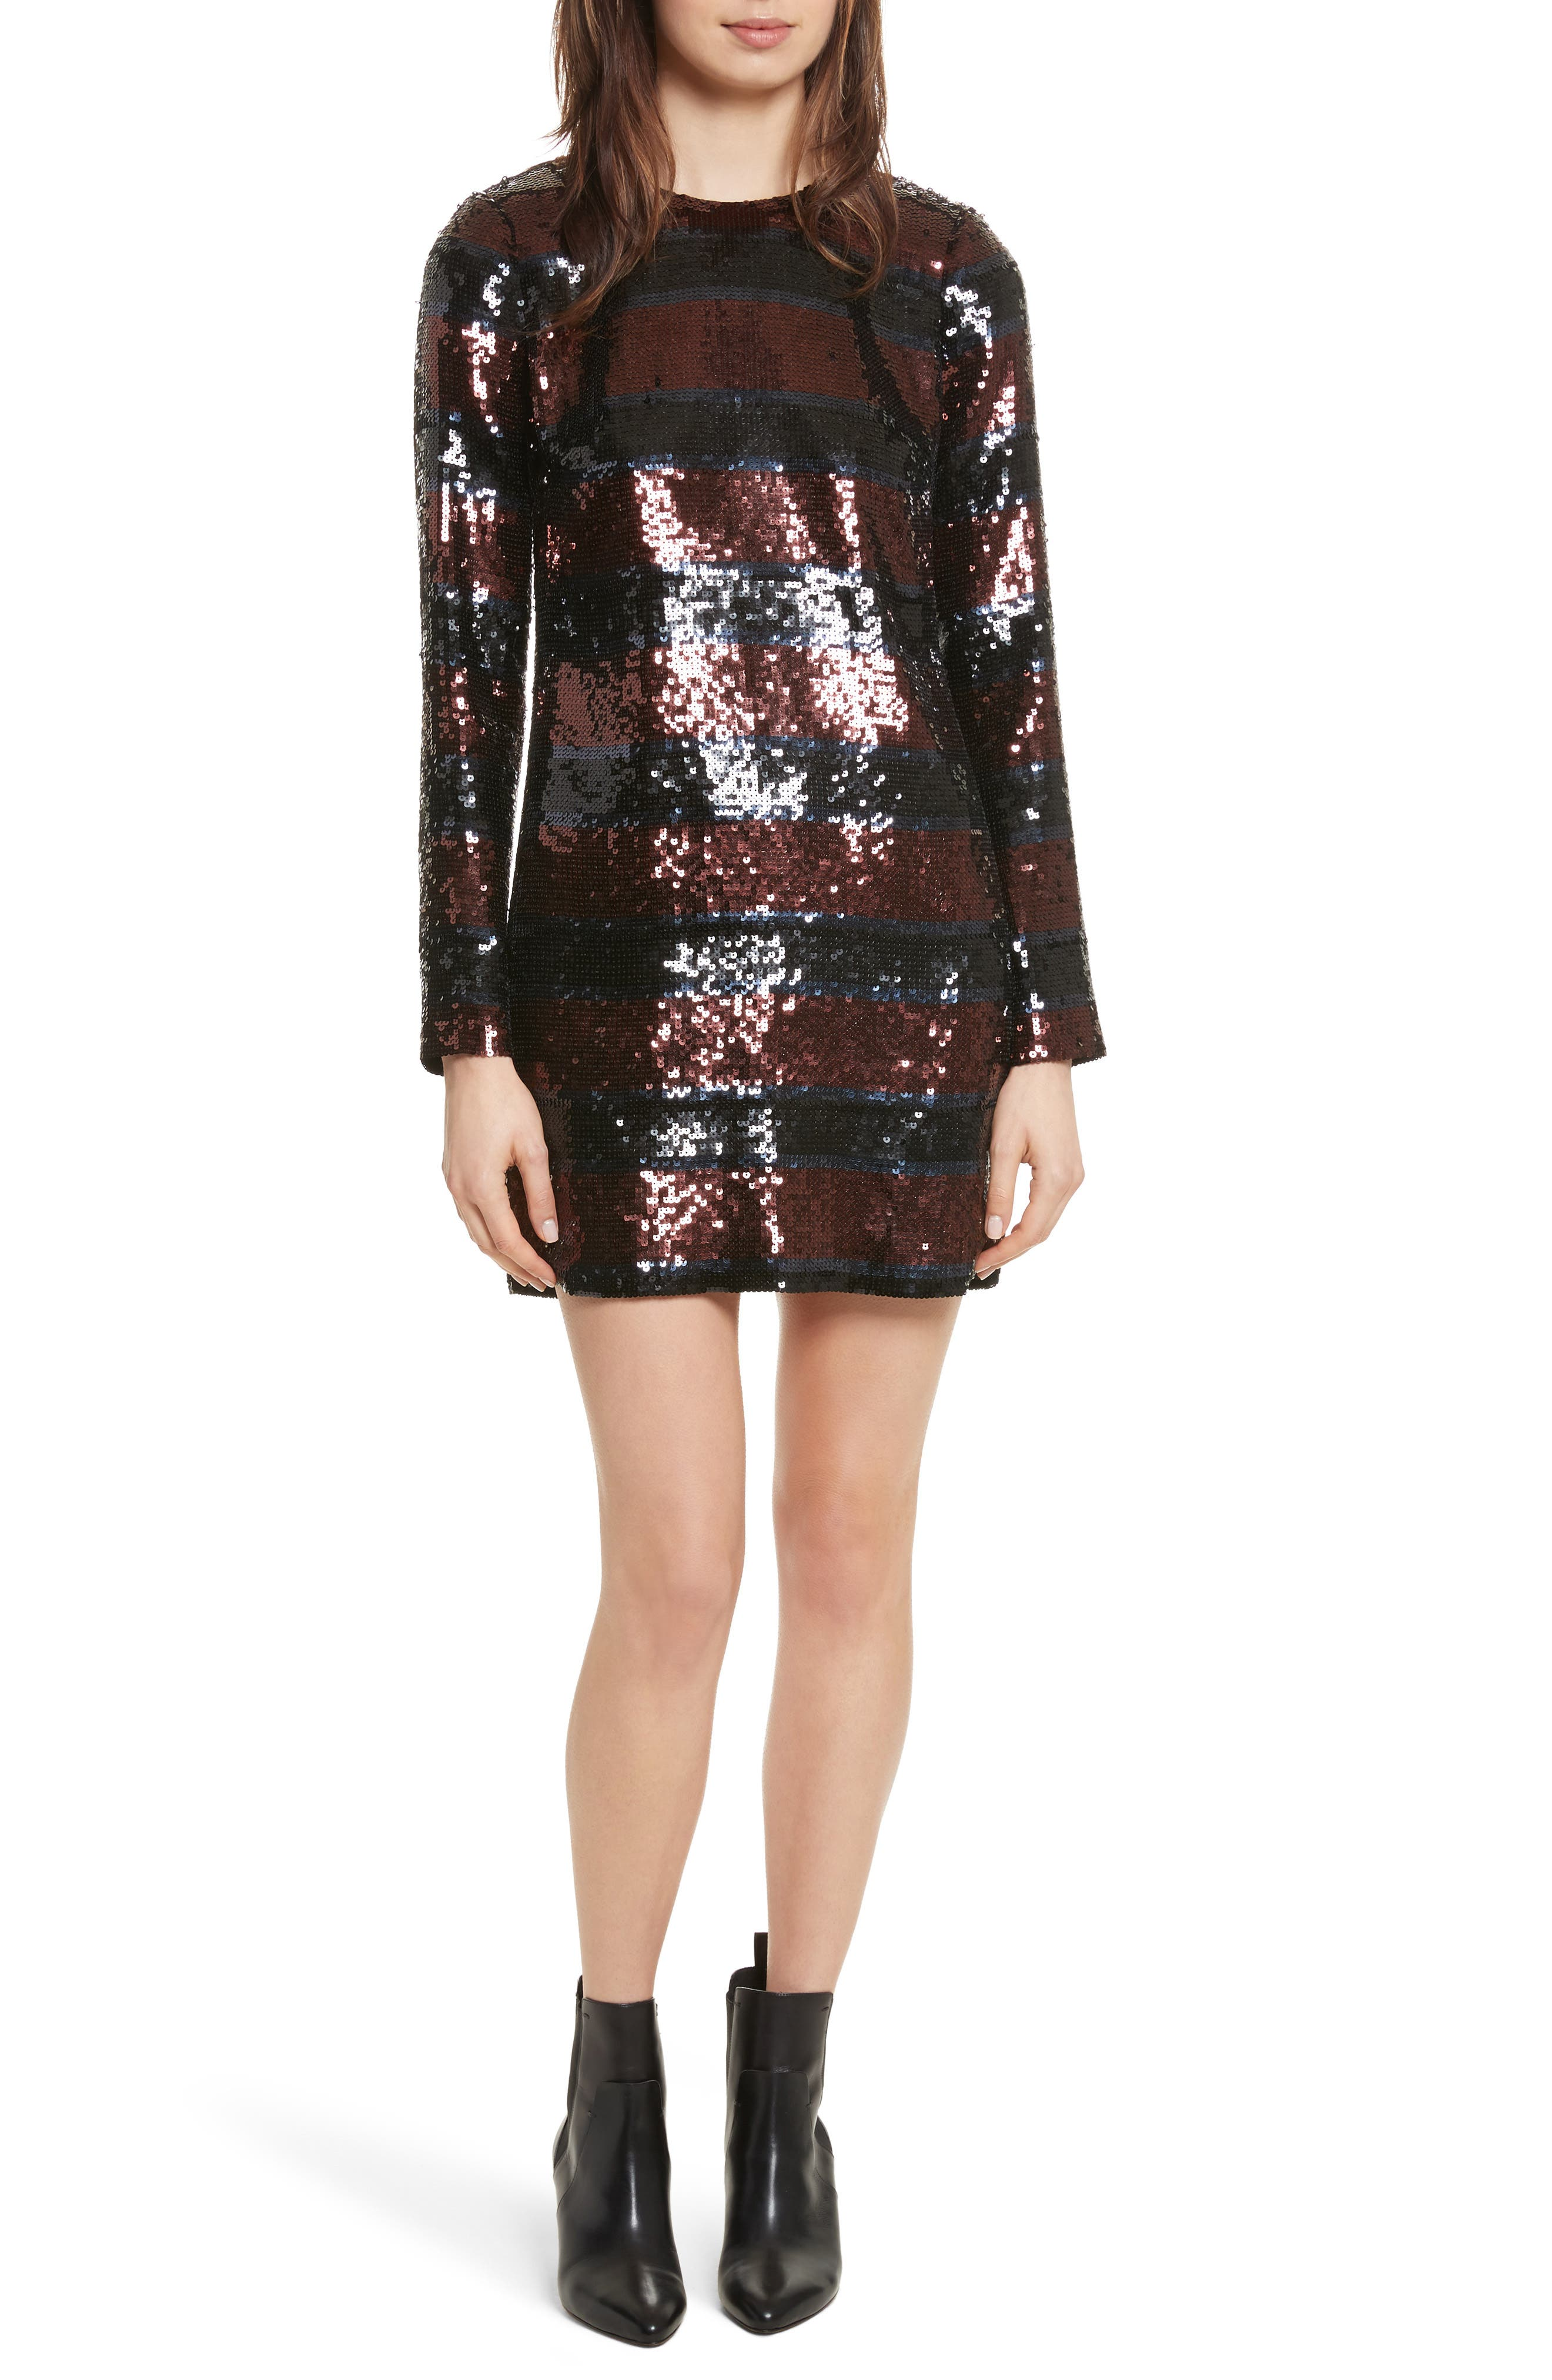 Breakers Sequin Dress,                             Main thumbnail 1, color,                             Dark Red/ Black